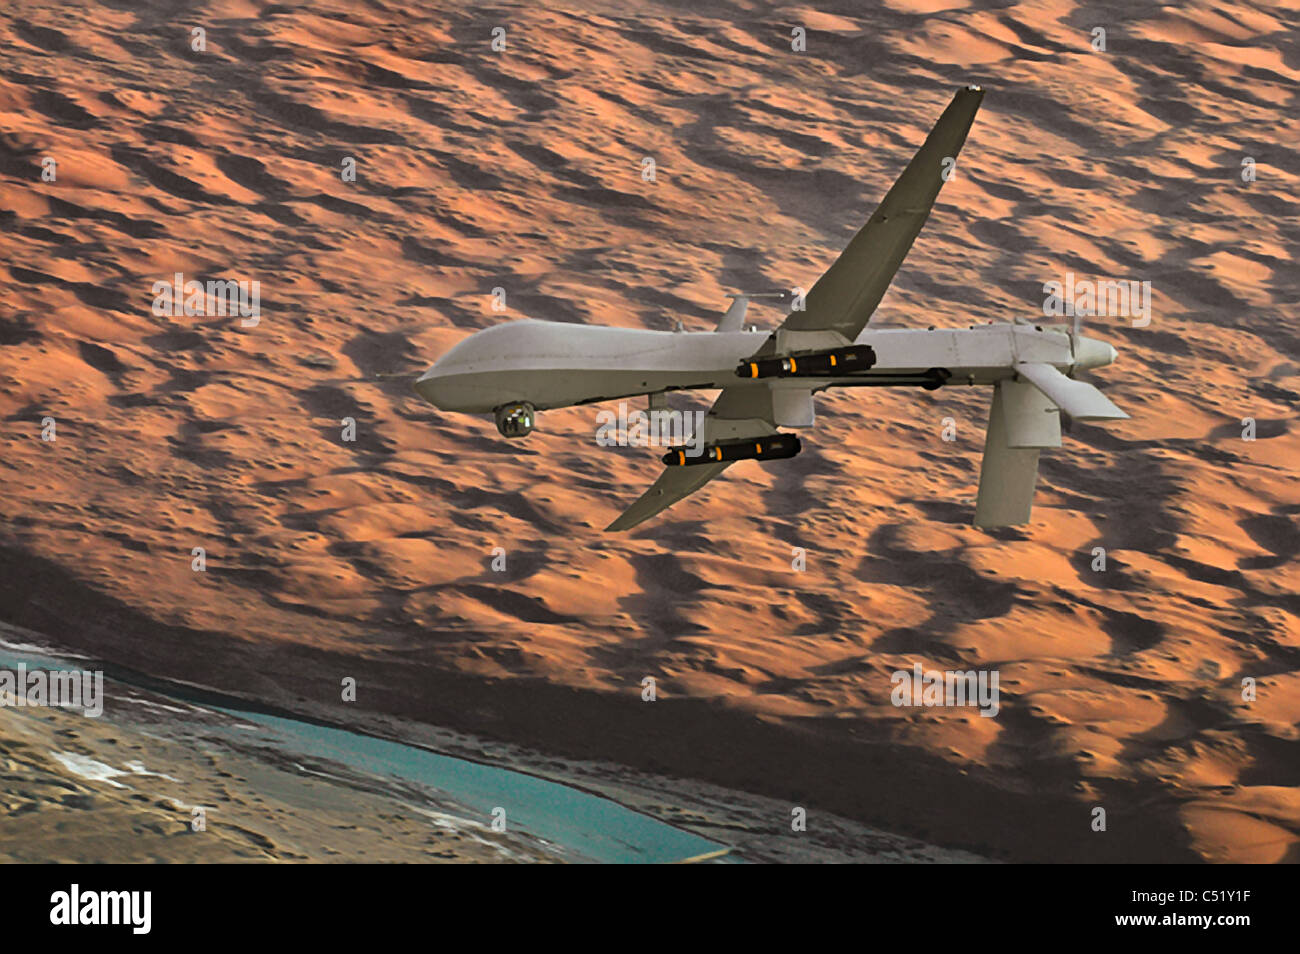 An MQ 1 Predator Unmanned Aircraft Armed With AGM 114 Hellfire Missiles